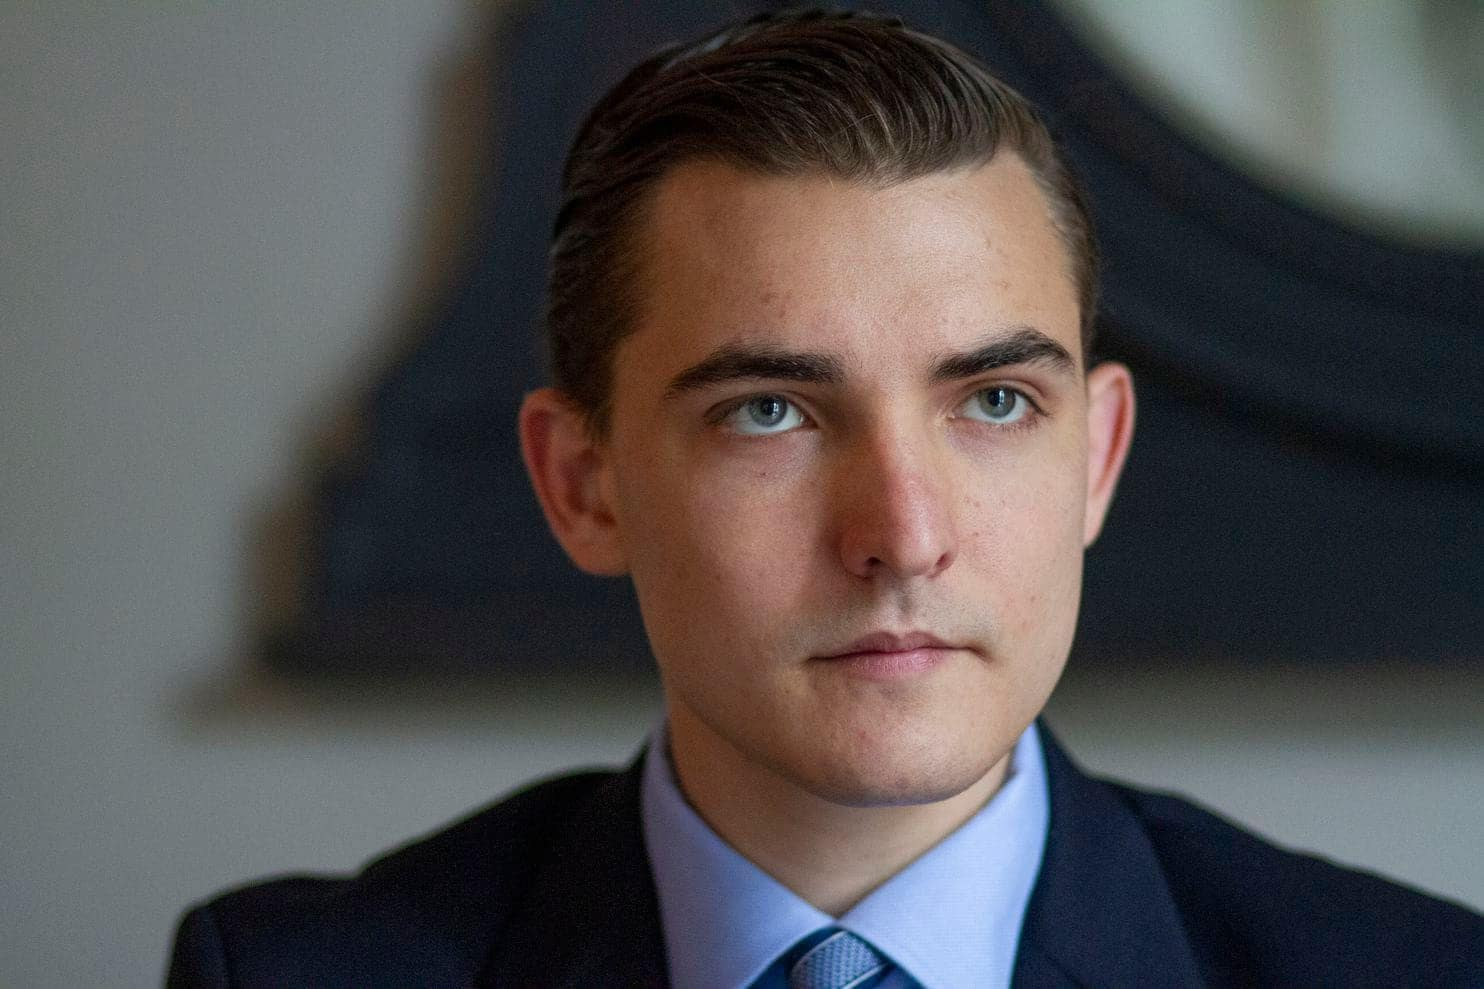 Jacob Wohl American Political Commentator, Investor, Entrepreneur, Financier, Writer and Podcaster